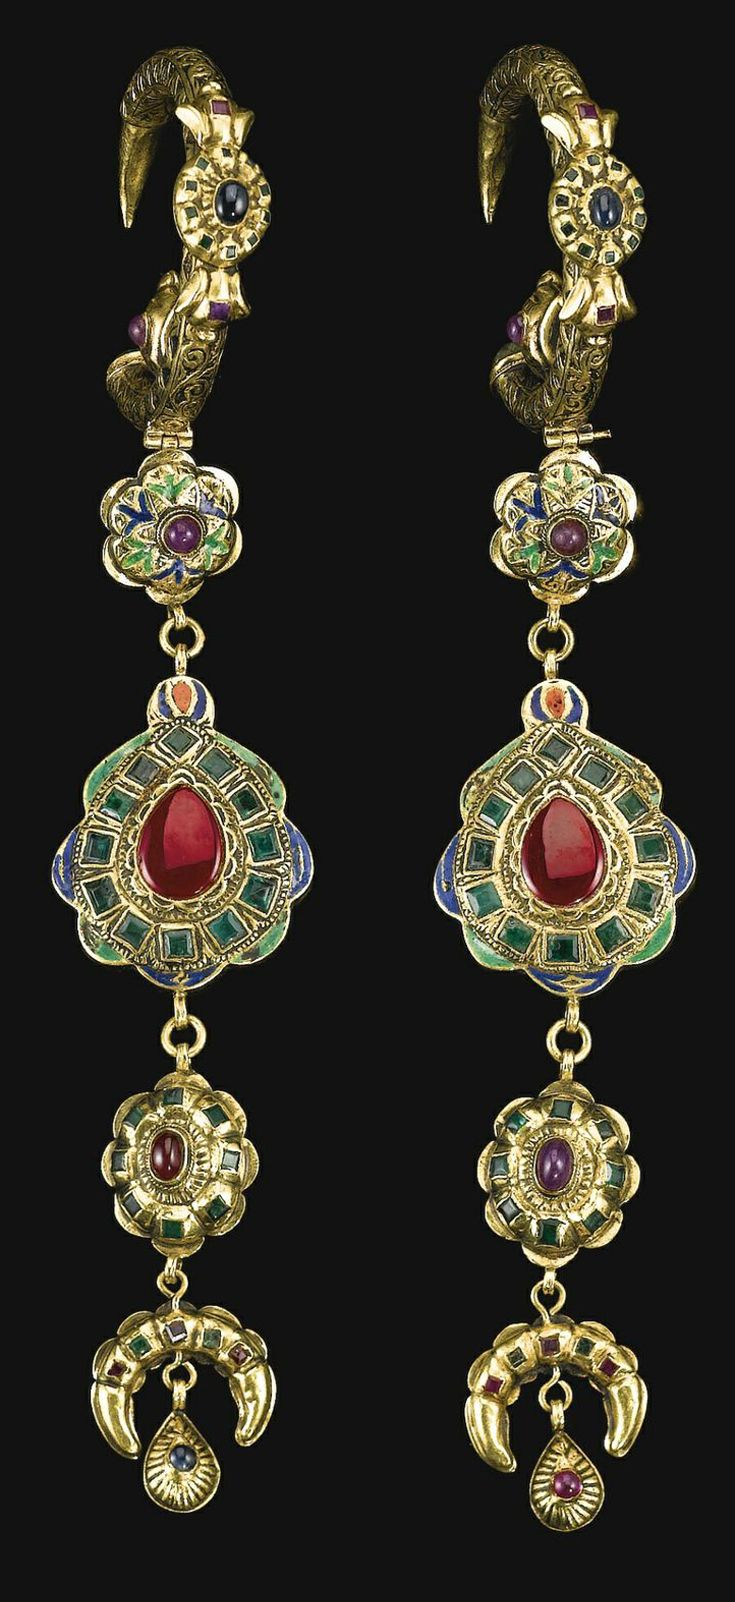 Morocco | Pair of gem-set gold 'Khros' earrings | 18th century | Est. £40'000 - 60'000 together with the matching 'Lebba' necklace (Apr. '14)